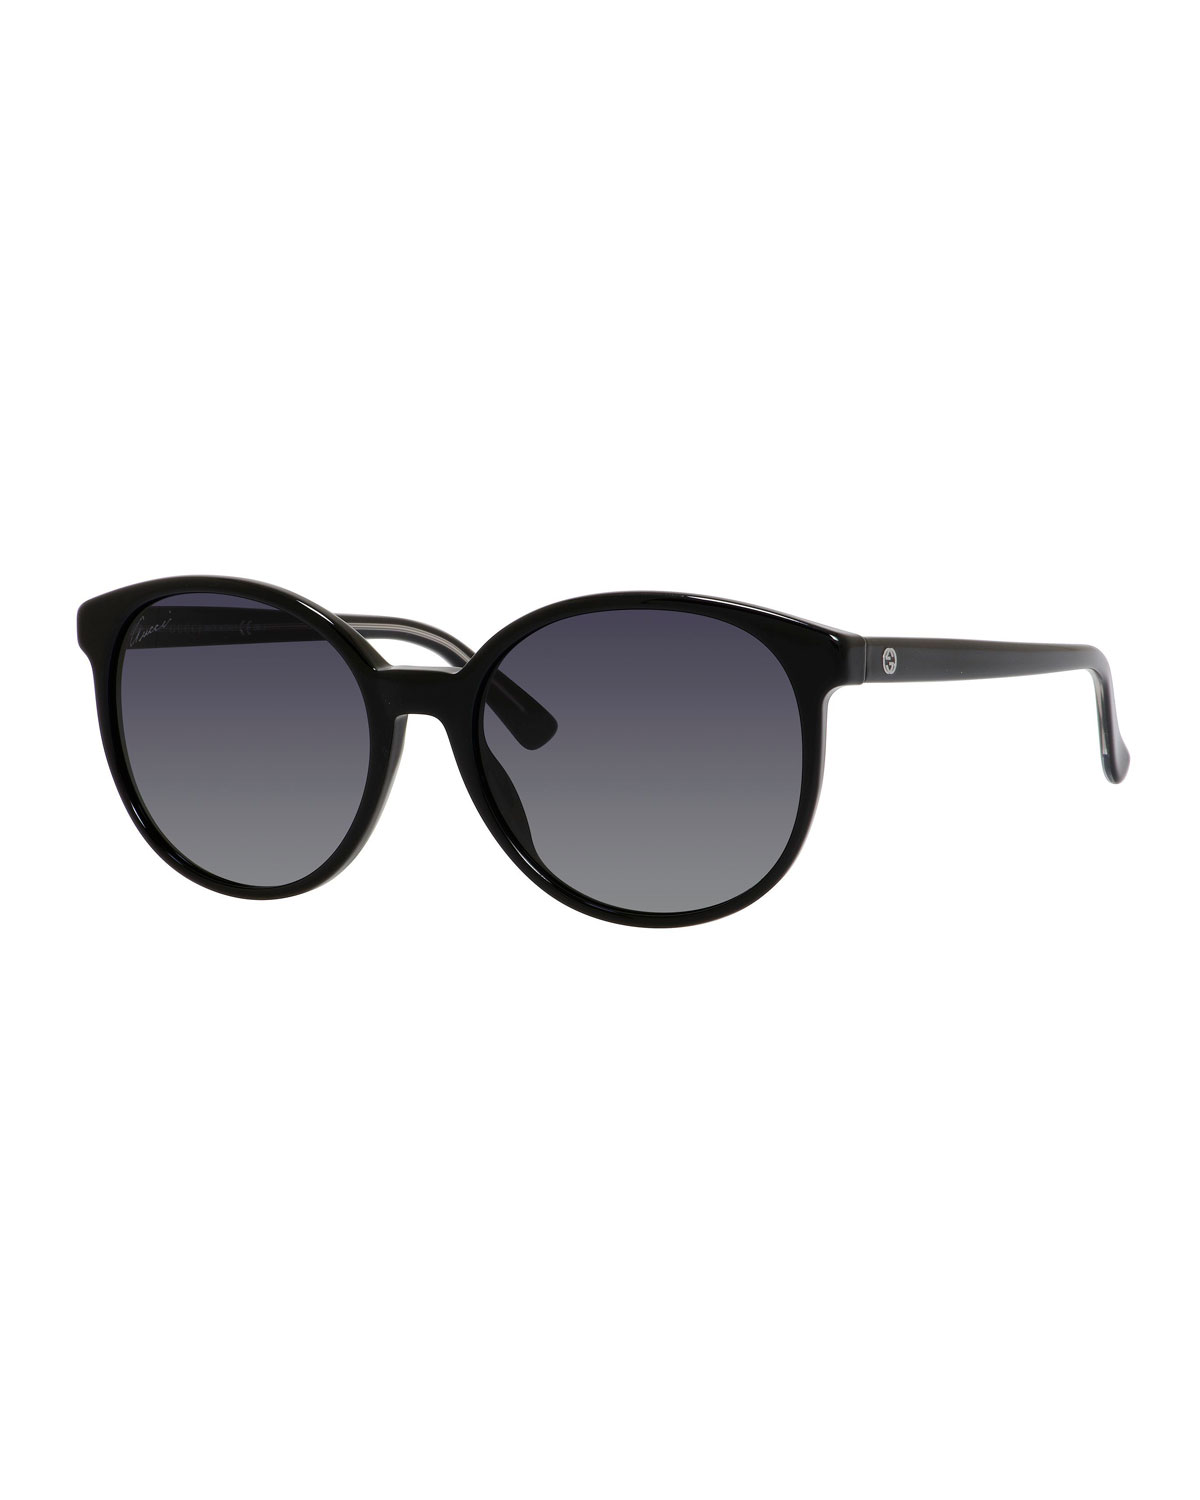 81320081ef9 Gucci Sunsights GG-Temple Round Butterfly Sunglasses